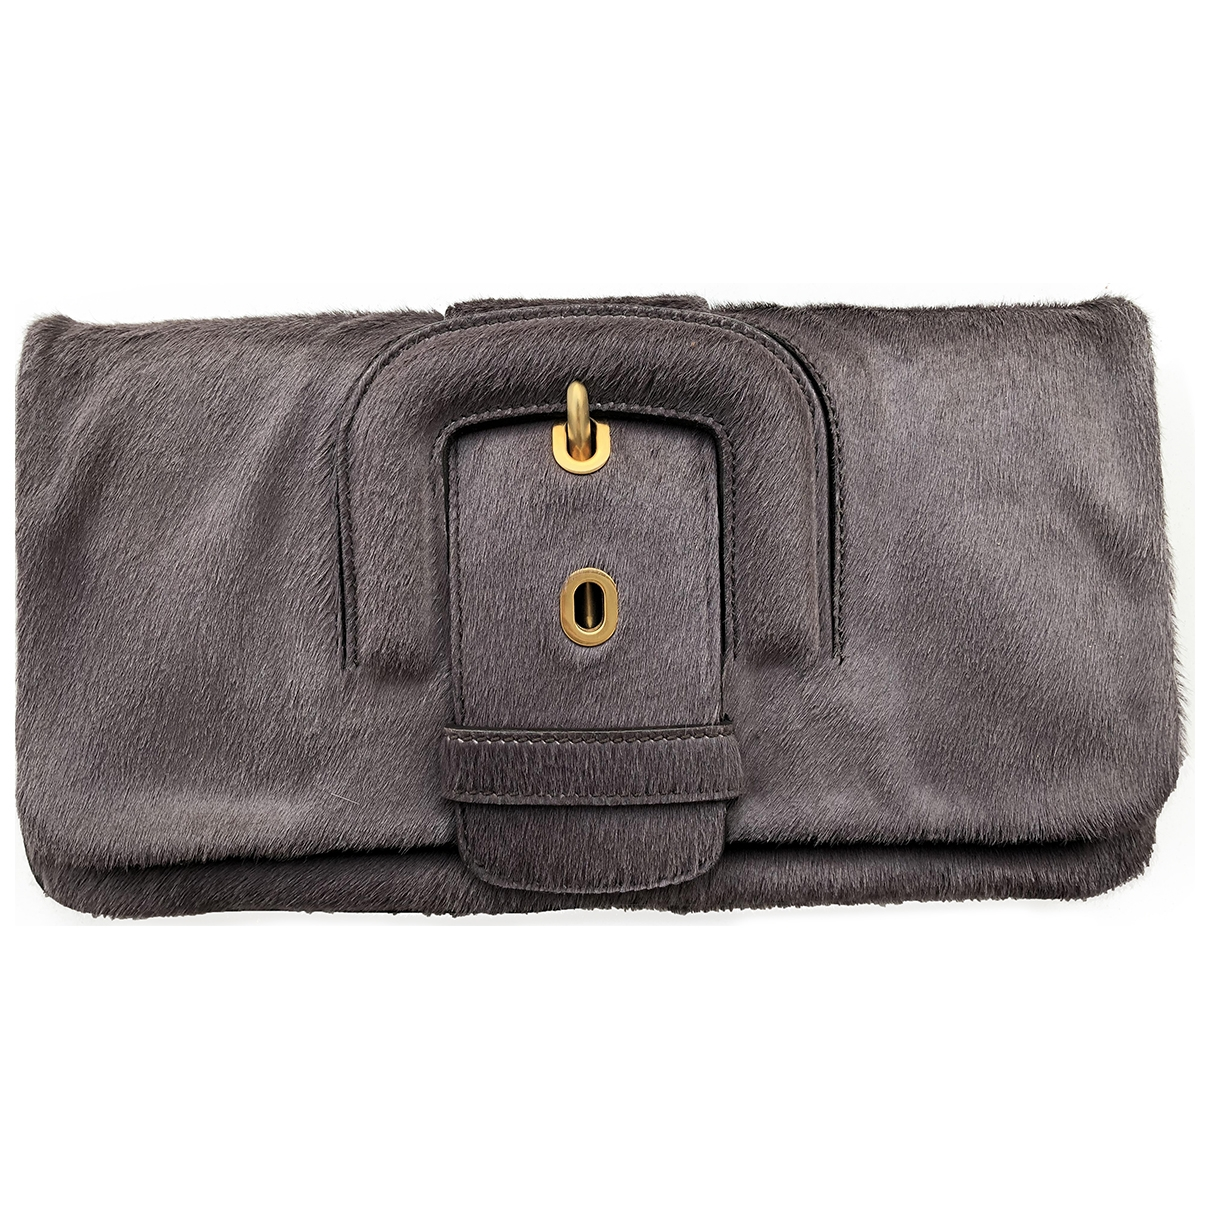 Tod's \N Grey Pony-style calfskin Clutch bag for Women \N